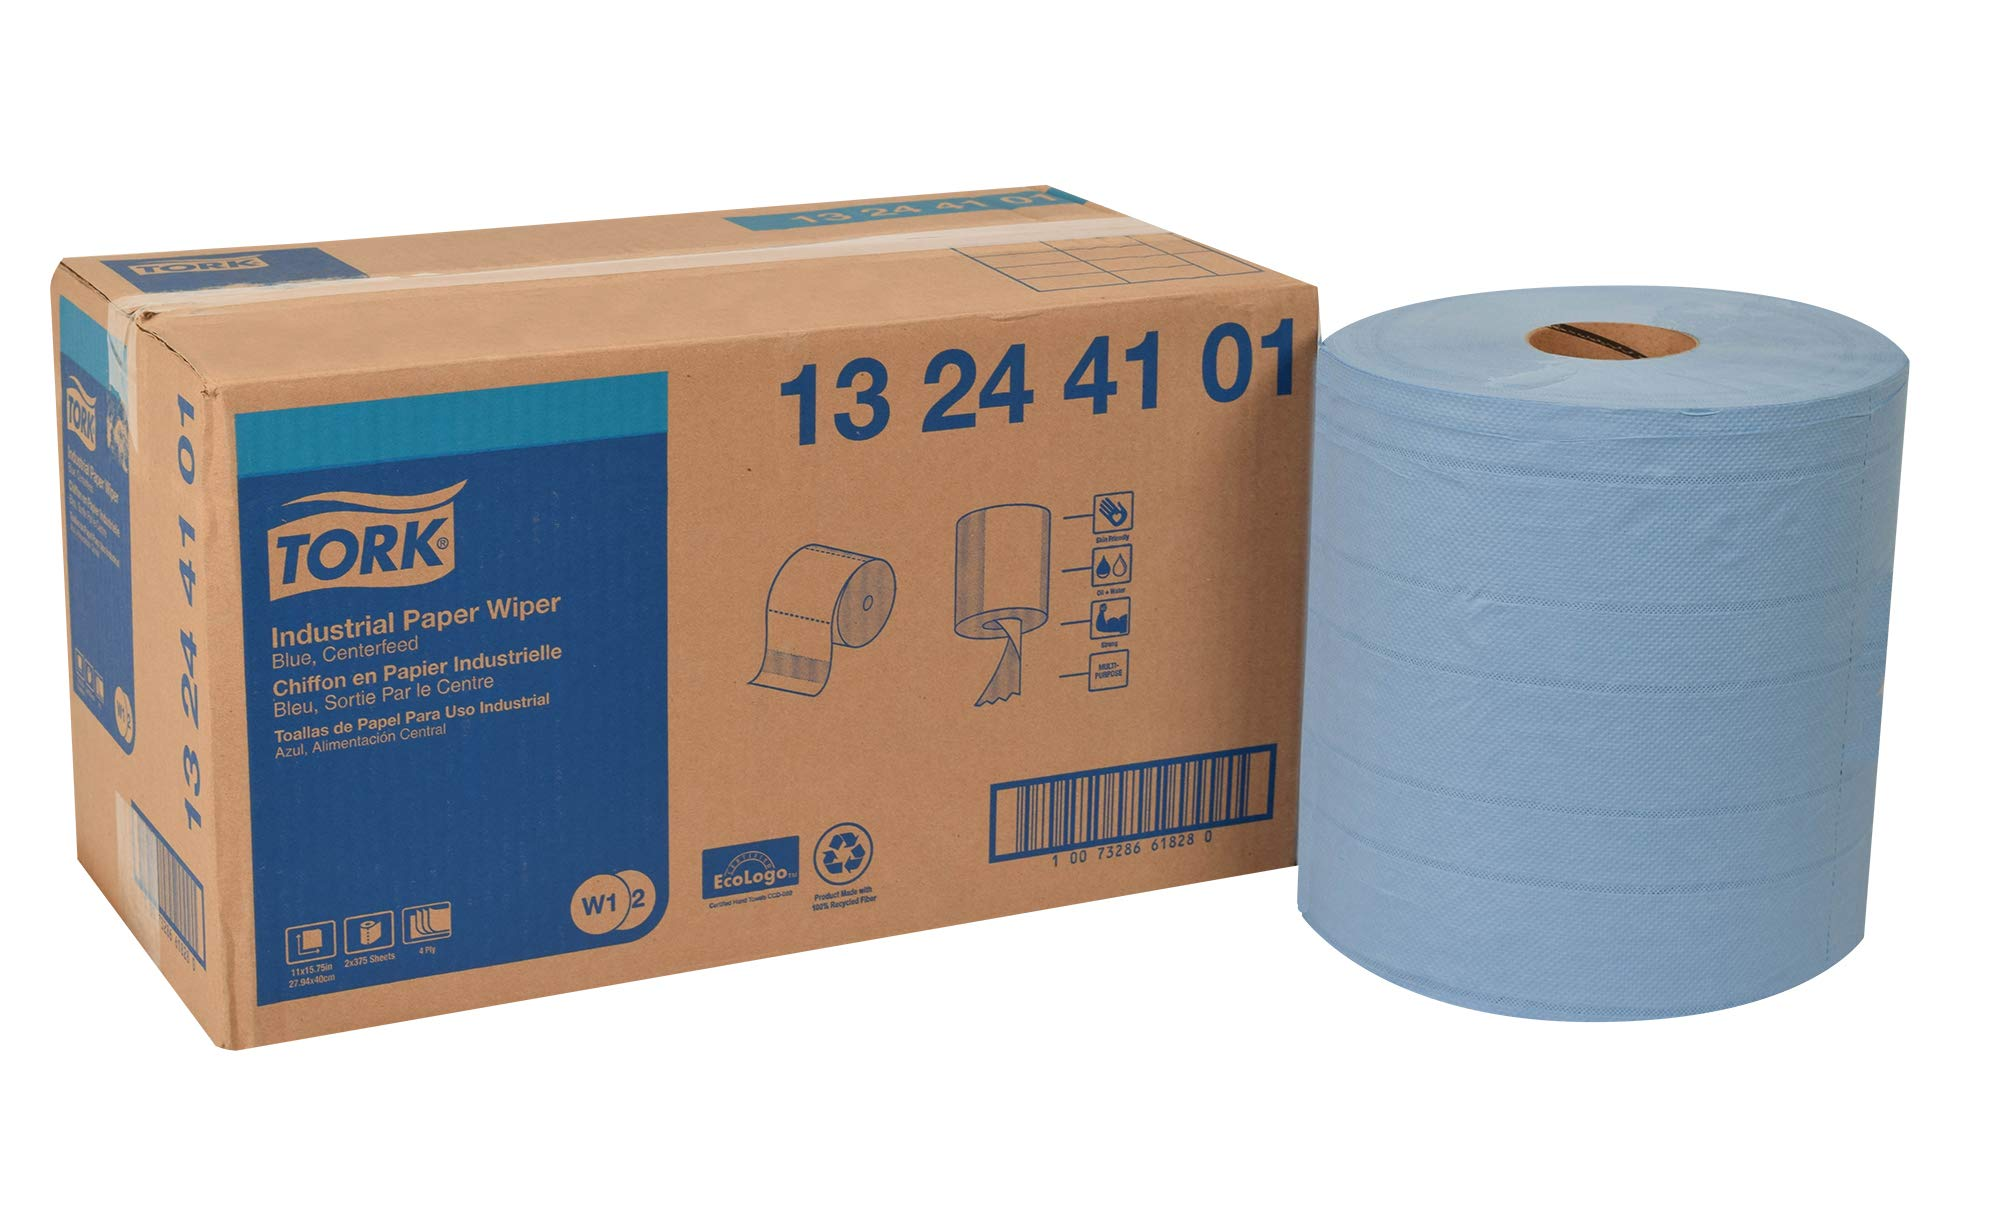 Tork 13244101 Industrial Paper Wiper, Centerfeed, 4-Ply, 11.0'' Width x 492' Length, Blue (Case of 2 Rolls, 375 per Roll, 750 Wipers per Case) Use with Tork 6520281, 6521281, 653020 or 653028